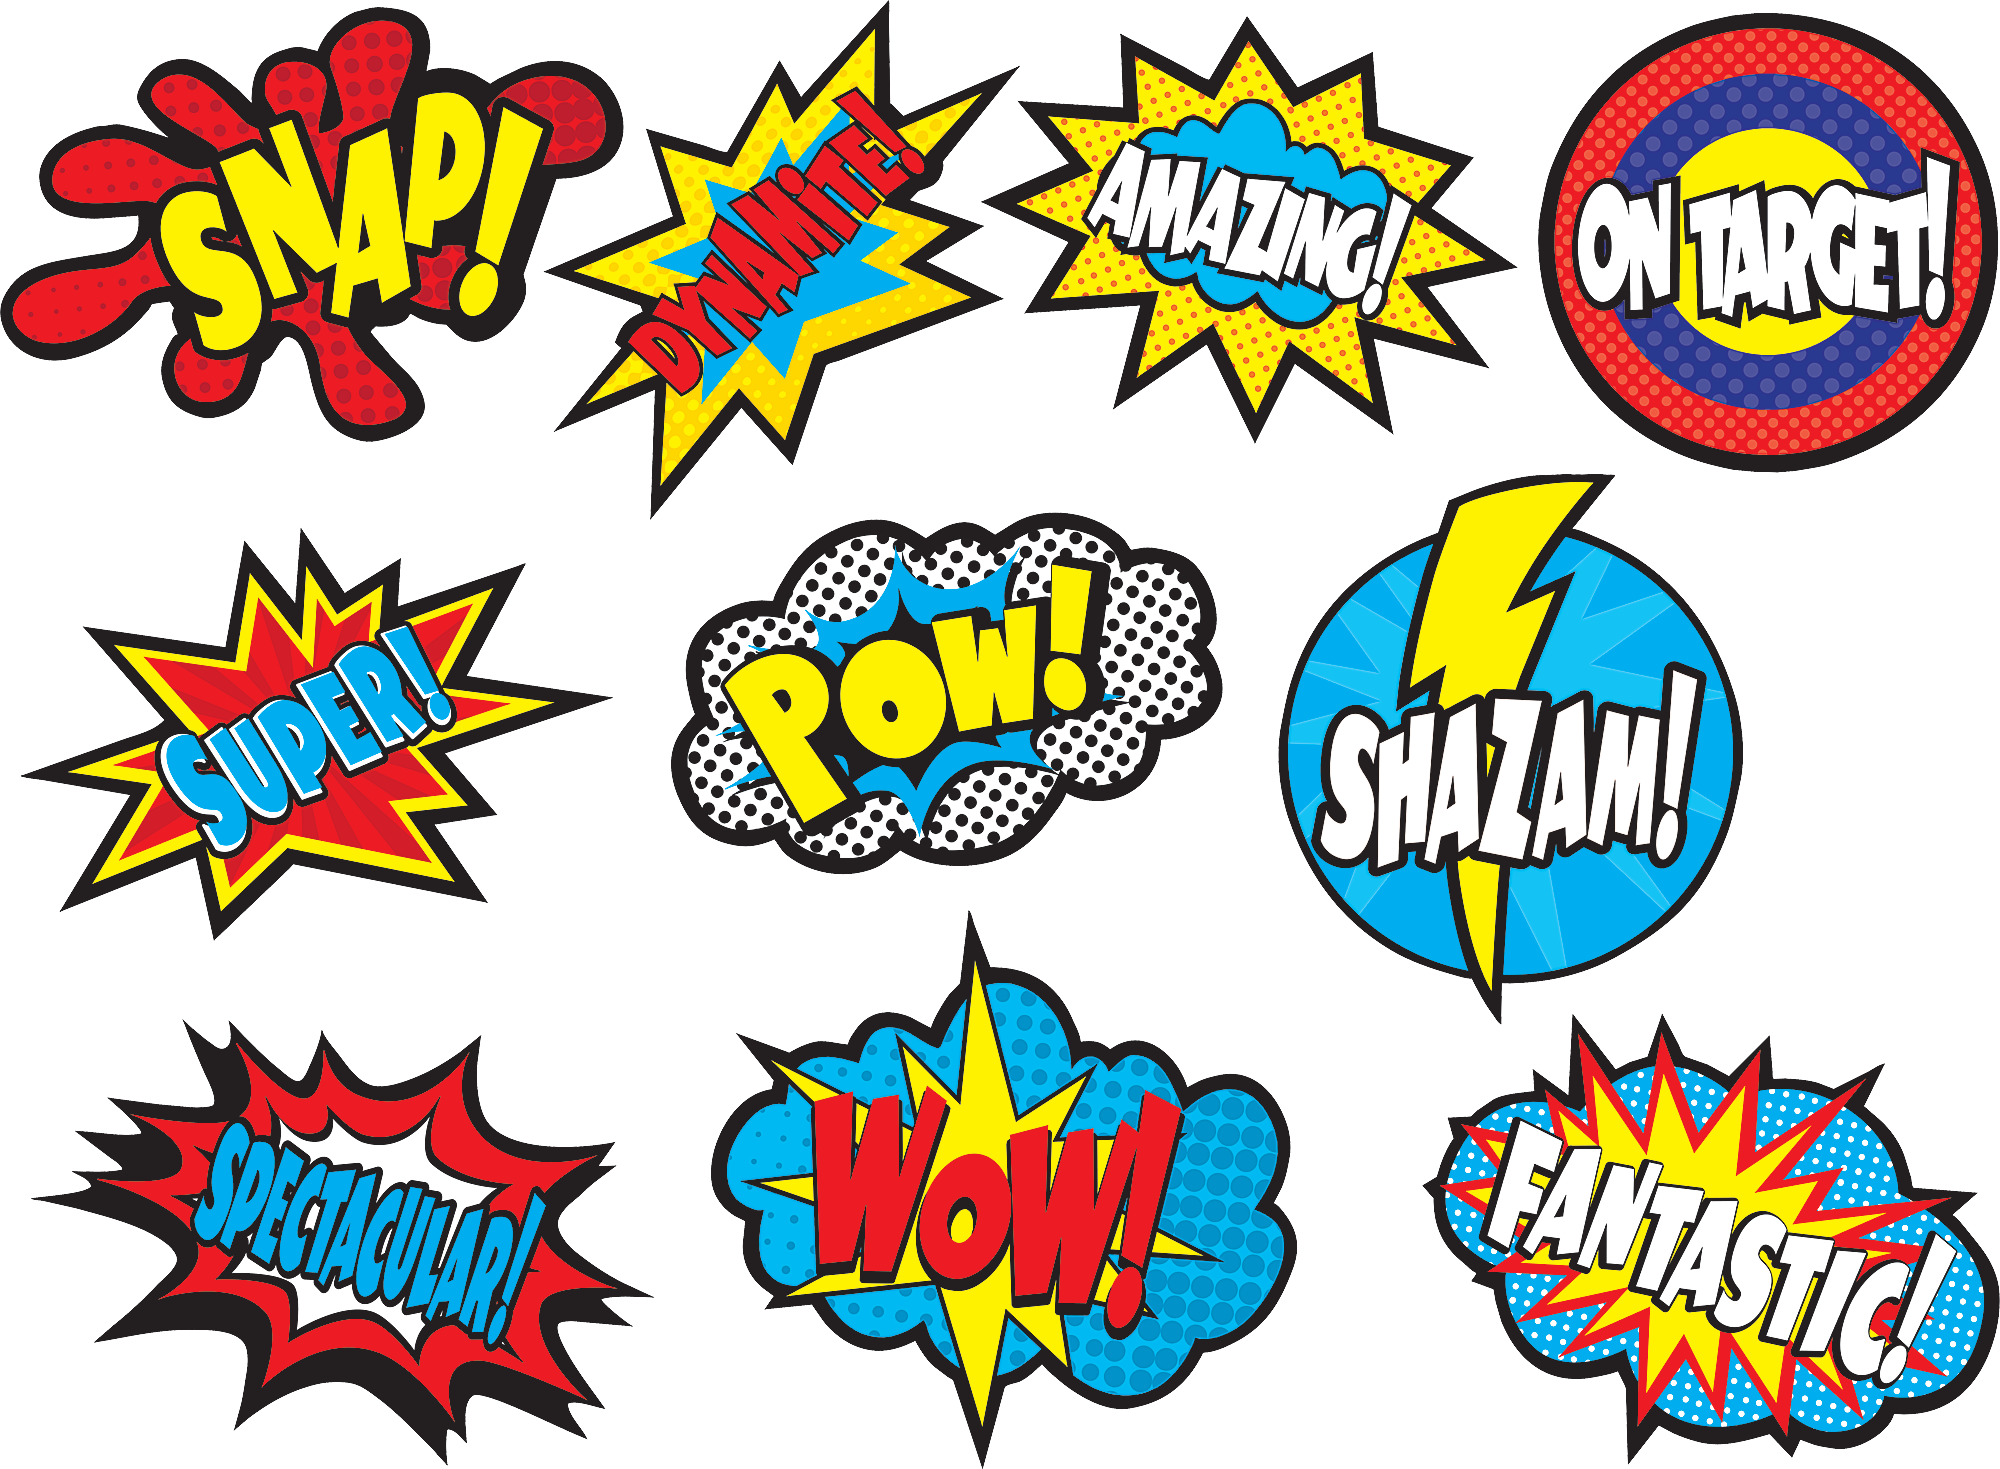 jpg Accents clipart text. Superhero sayings pinterest bulletin